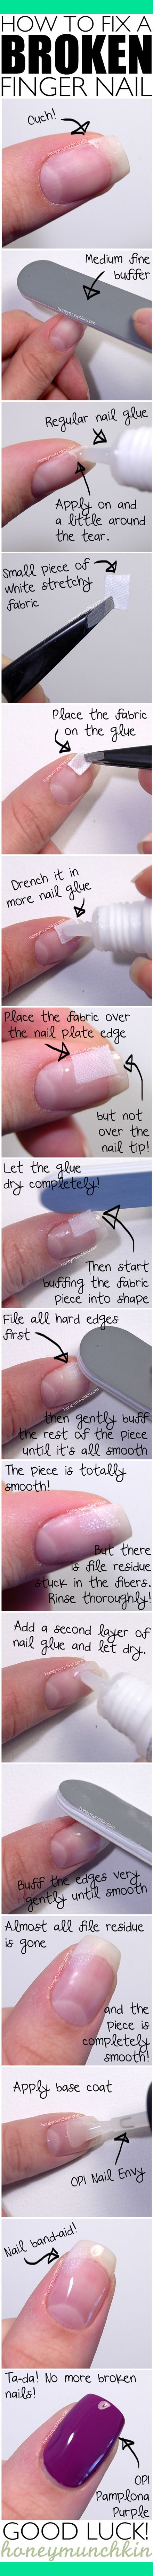 sos beauty for nails - how to fix a broken finger nail